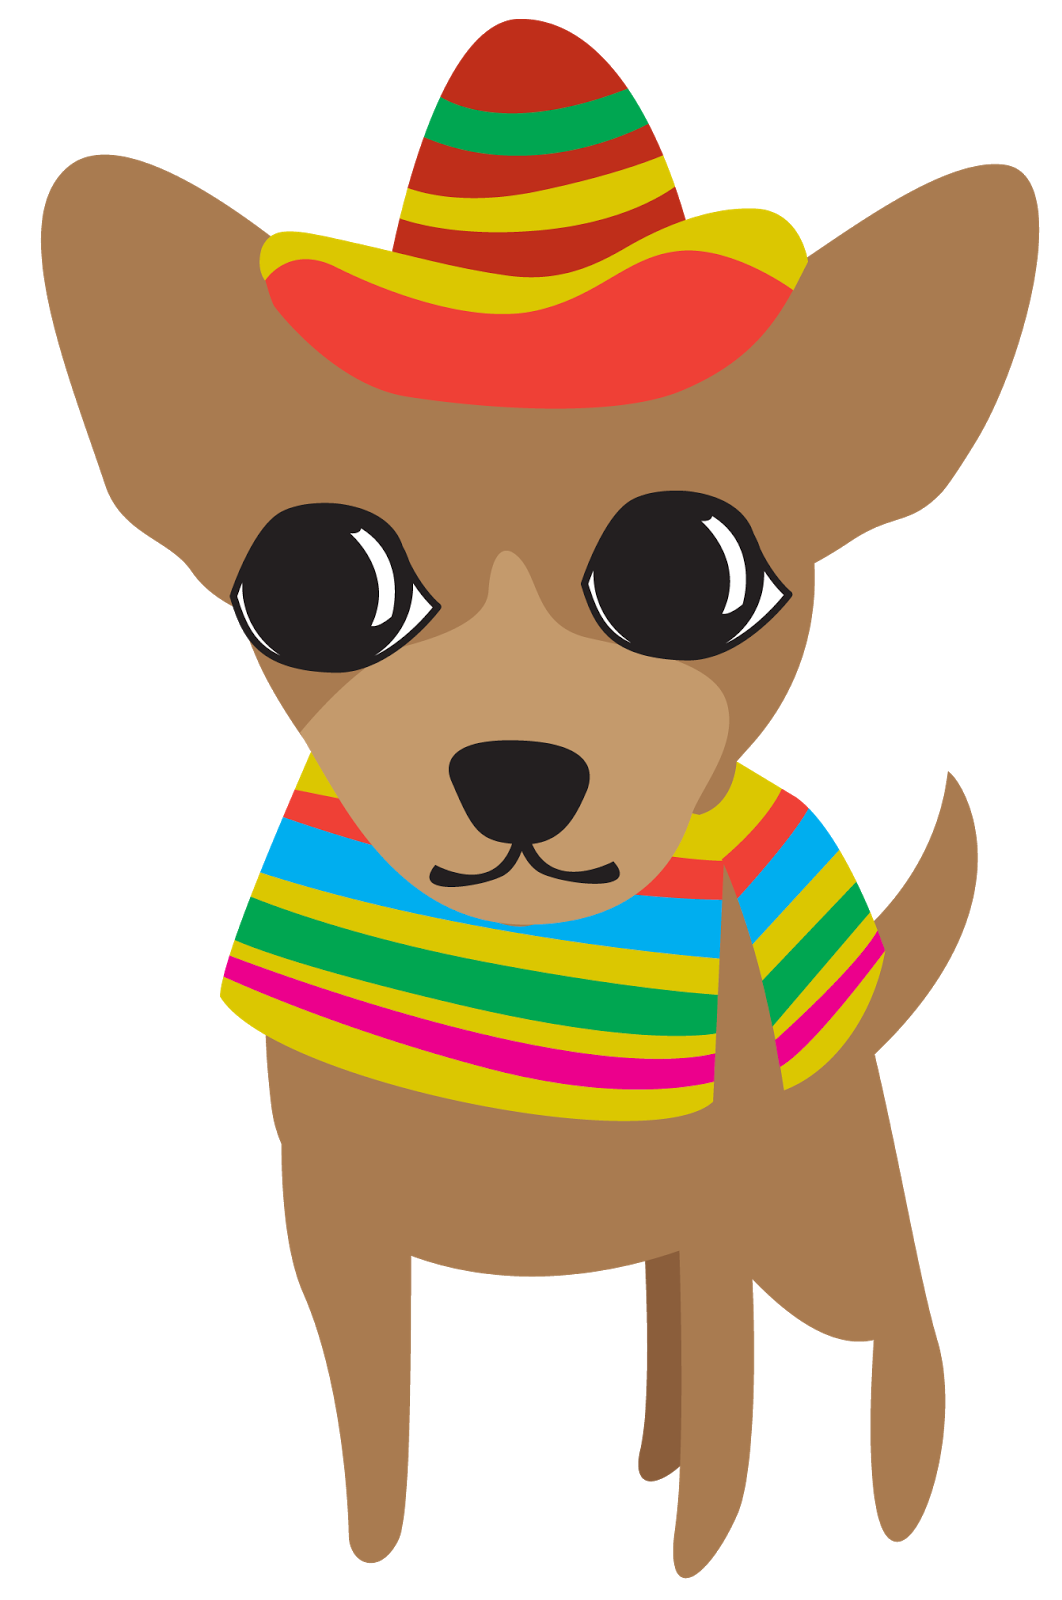 Cinco de mayo flower clipart picture transparent stock 5 De Mayo Clipart at GetDrawings.com | Free for personal use 5 De ... picture transparent stock